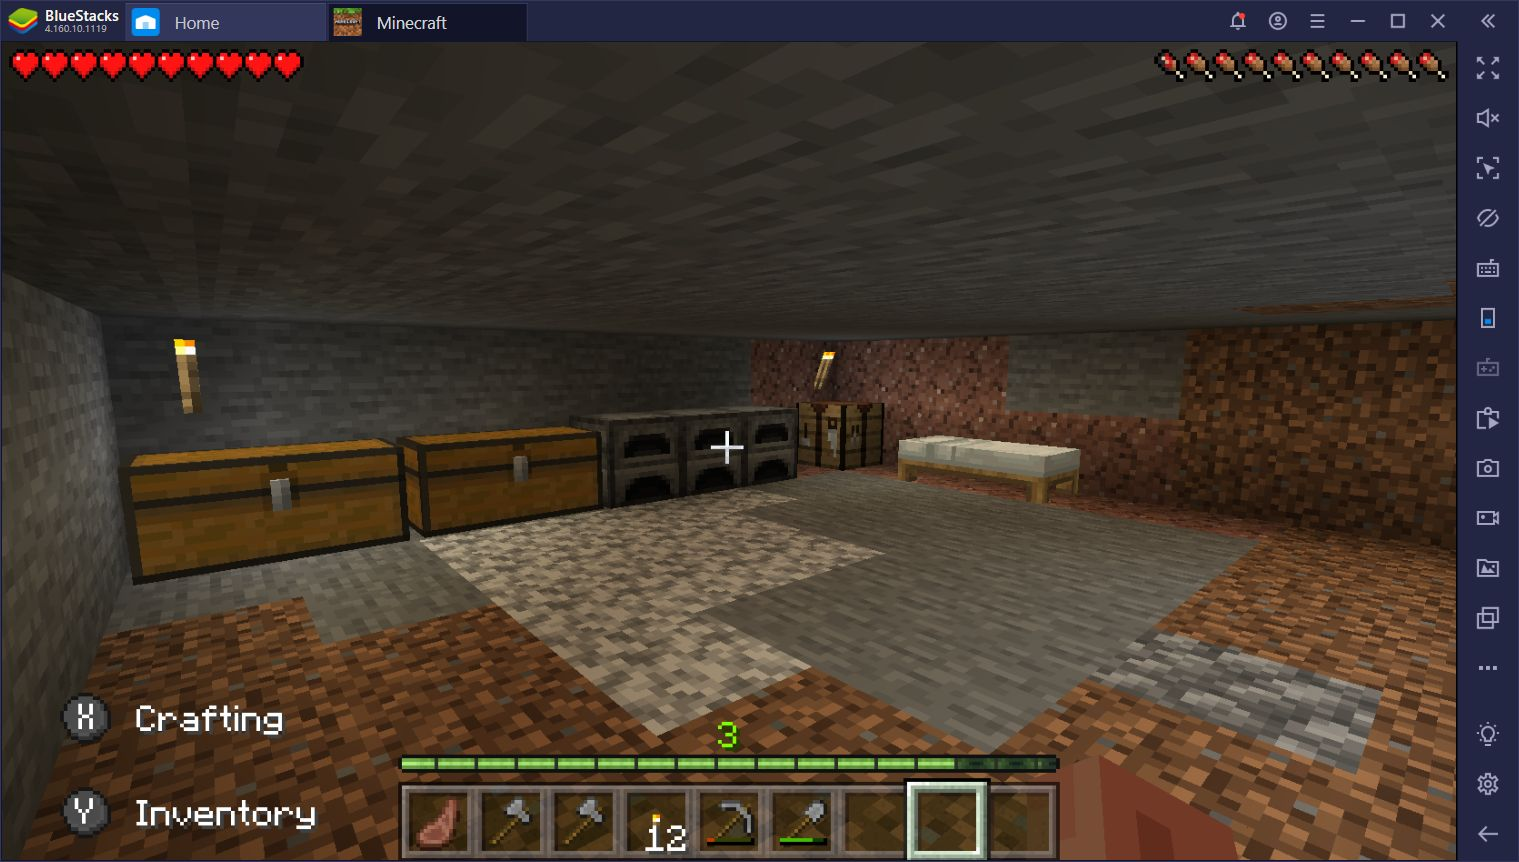 Minecraft on PC Survival Mode - How to Survive the First Day and Set Up a Base